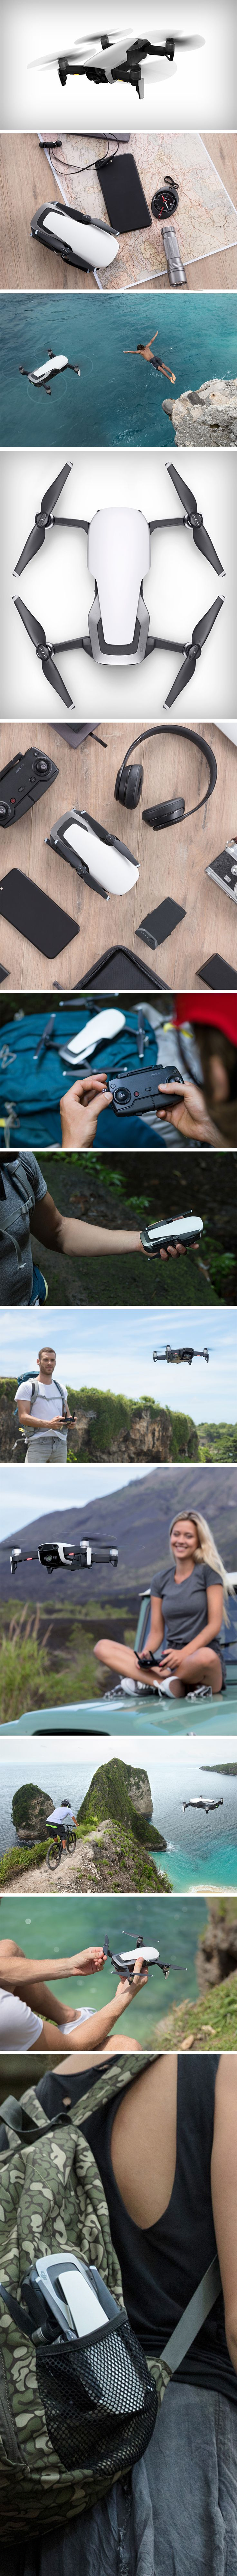 The good guys at DJI have gone another step into the future and provided us with the most dynamic three-axis gimbal assisted drone, the Mavic Air, weighing around 1 pound and has the ability to shoot videos in a stunning 4K. The pictures of this are insane, its minuscule, how on earth can these be jam-packed full of goodness, capture insanely high-quality images and yet be about the same size as a pea. BUY NOW!